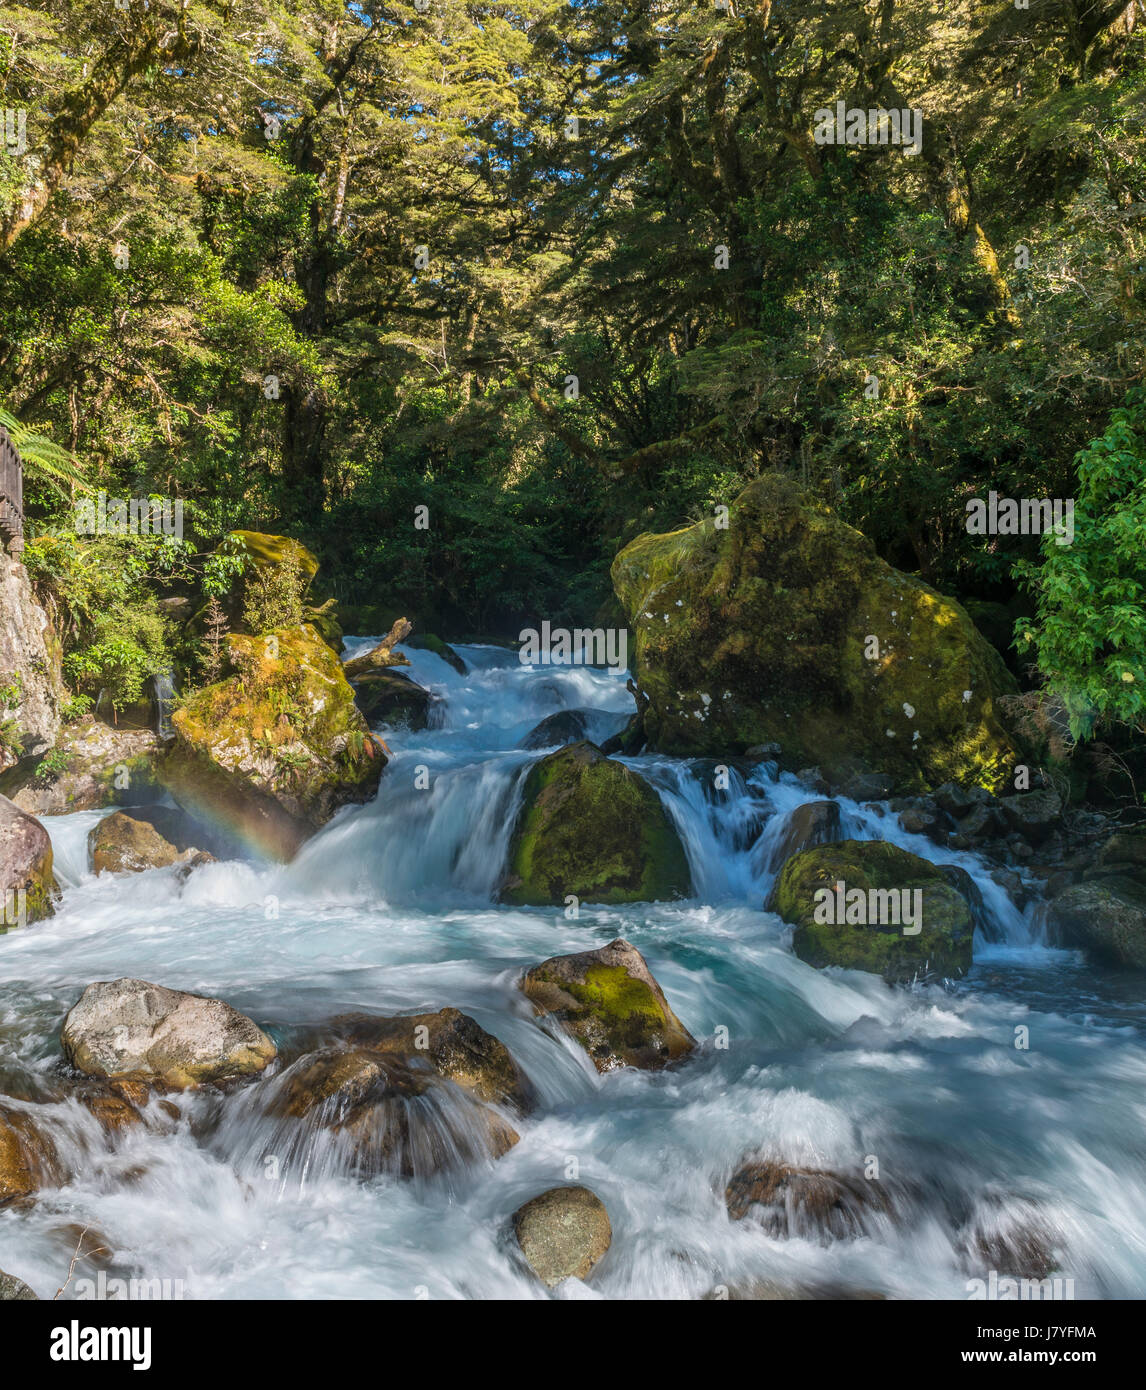 River flowing through lush vegetation, temperate rainforest, Fiordland National Park, Southland, New Zealand - Stock Image